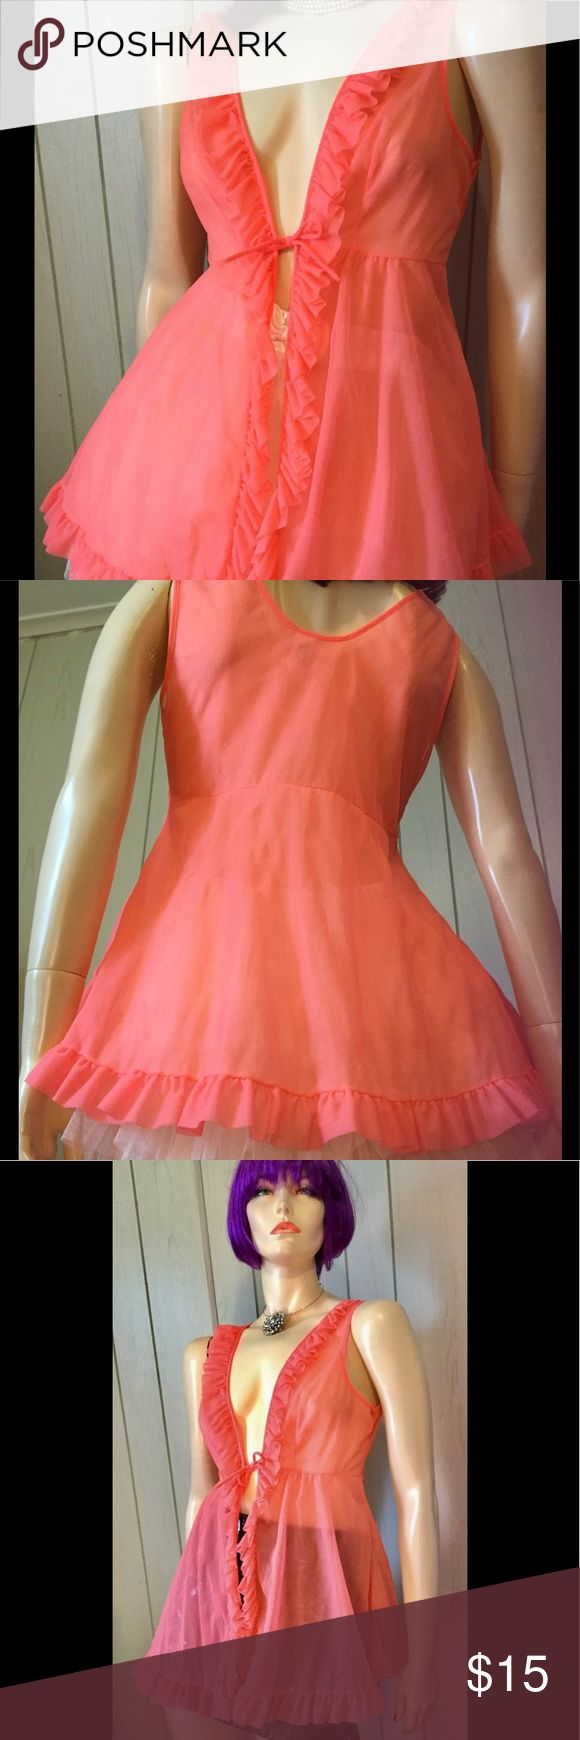 """Vintage MOD 60s Peach Sheer Chiffon Babydoll Top Ultra MOD vintage 60s sheer DBL nylon babydoll top in bright NEON peach. Ruffle chiffon trim front and hem. Ties at empire Bust. Would look cute layered over a summer top. Very Retro Glam.  Size: M  Bust:app 32-36"""" Up to 32"""" at empire seam under Bust. Length:App 17"""" from underarm to hem. Made In USA Material:100% Nylon Tricot (Fabric is light & sheer) Color:Peach Condition:VG. Some minor wear in a few areas in back showing slight tears in…"""